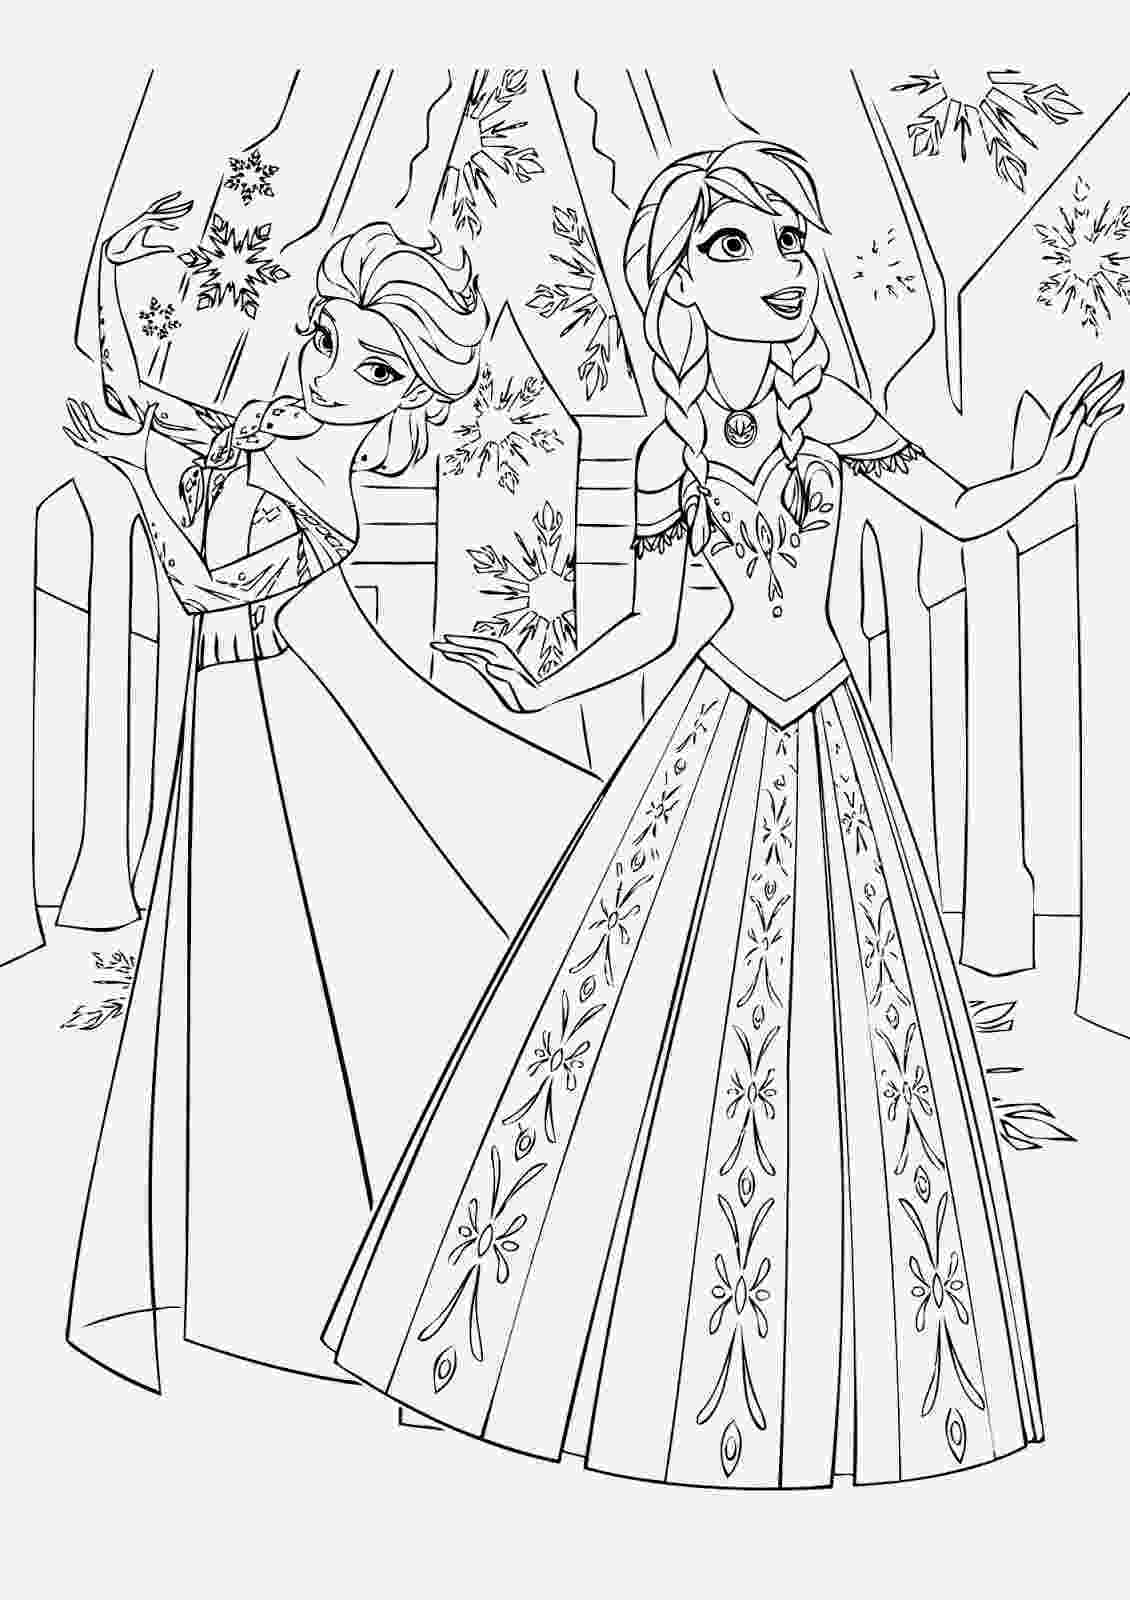 coloring pages printable frozen free printable frozen coloring pages for kids best coloring pages printable frozen